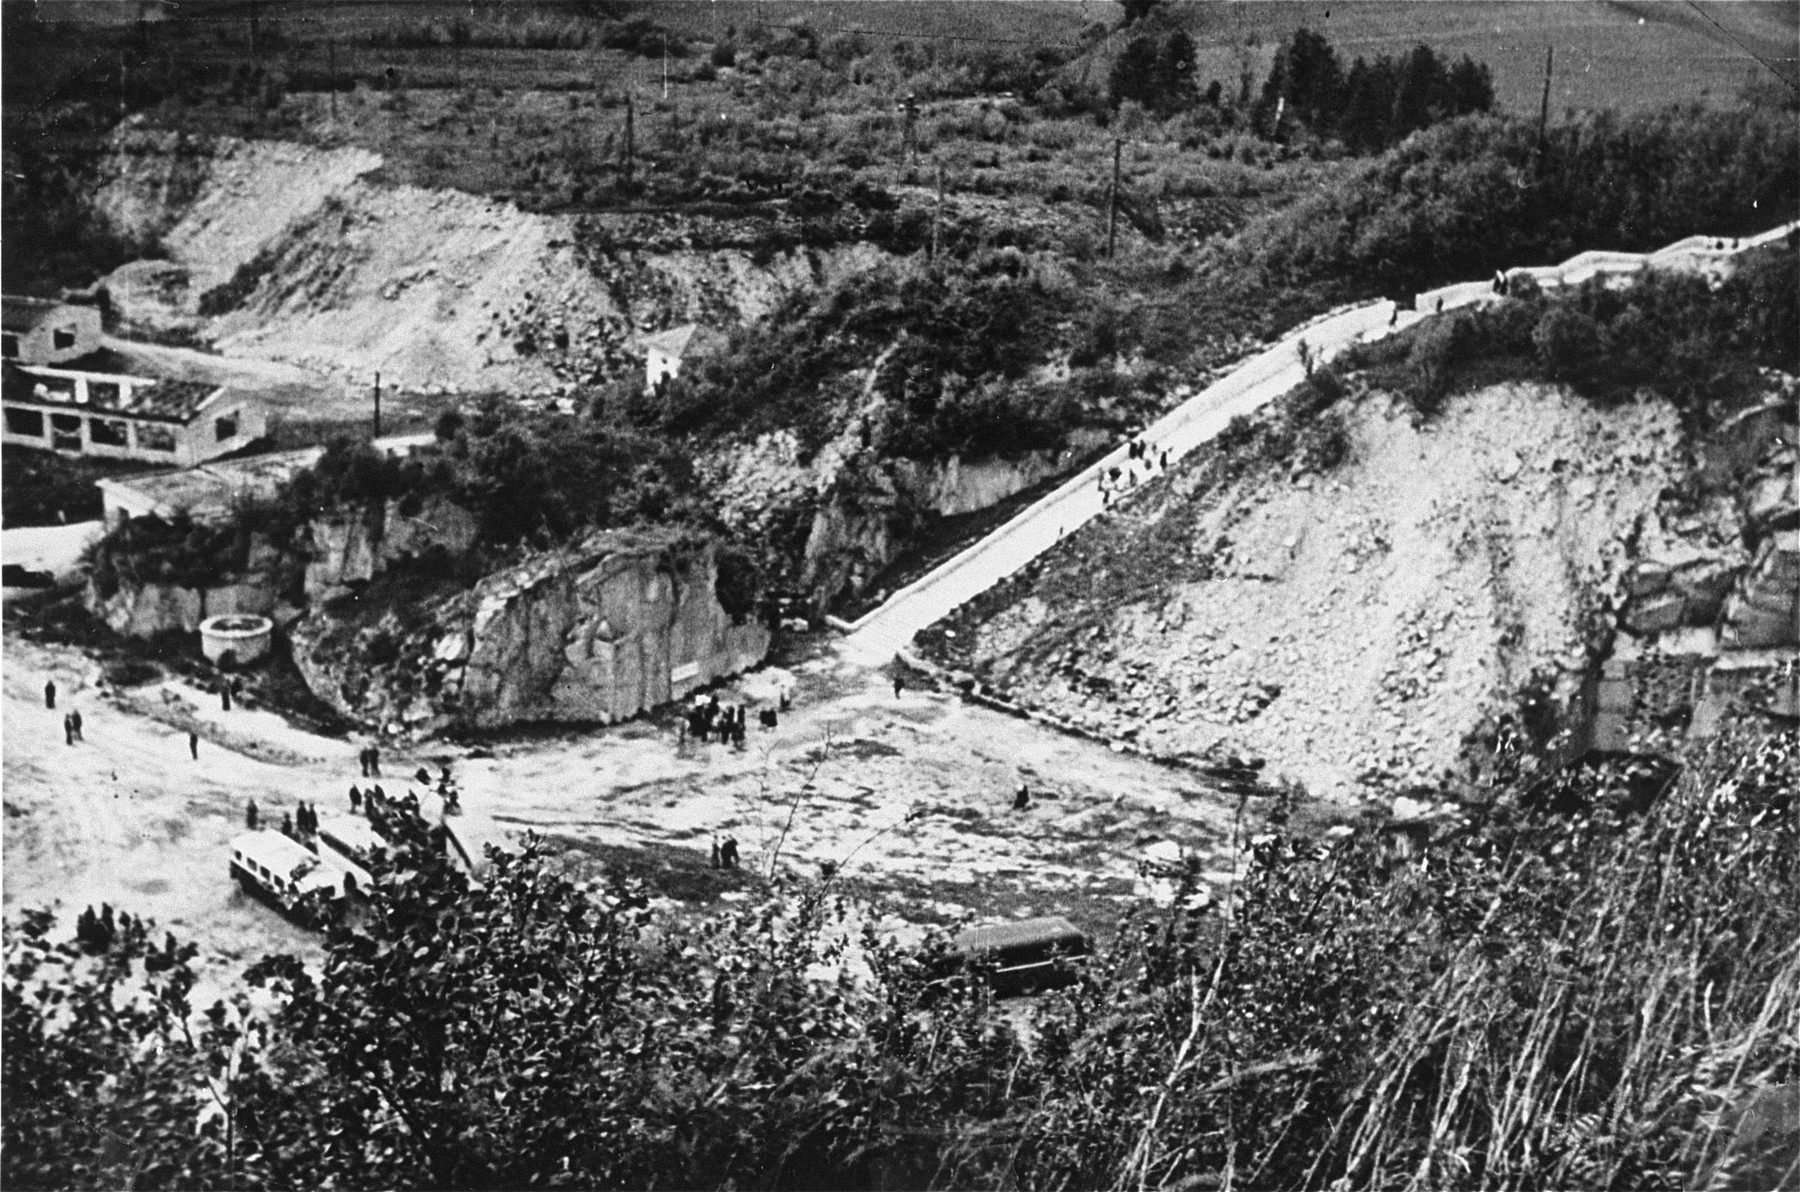 View of the Wiener Graben quarry at the Mauthausen concentration camp after the liberation.